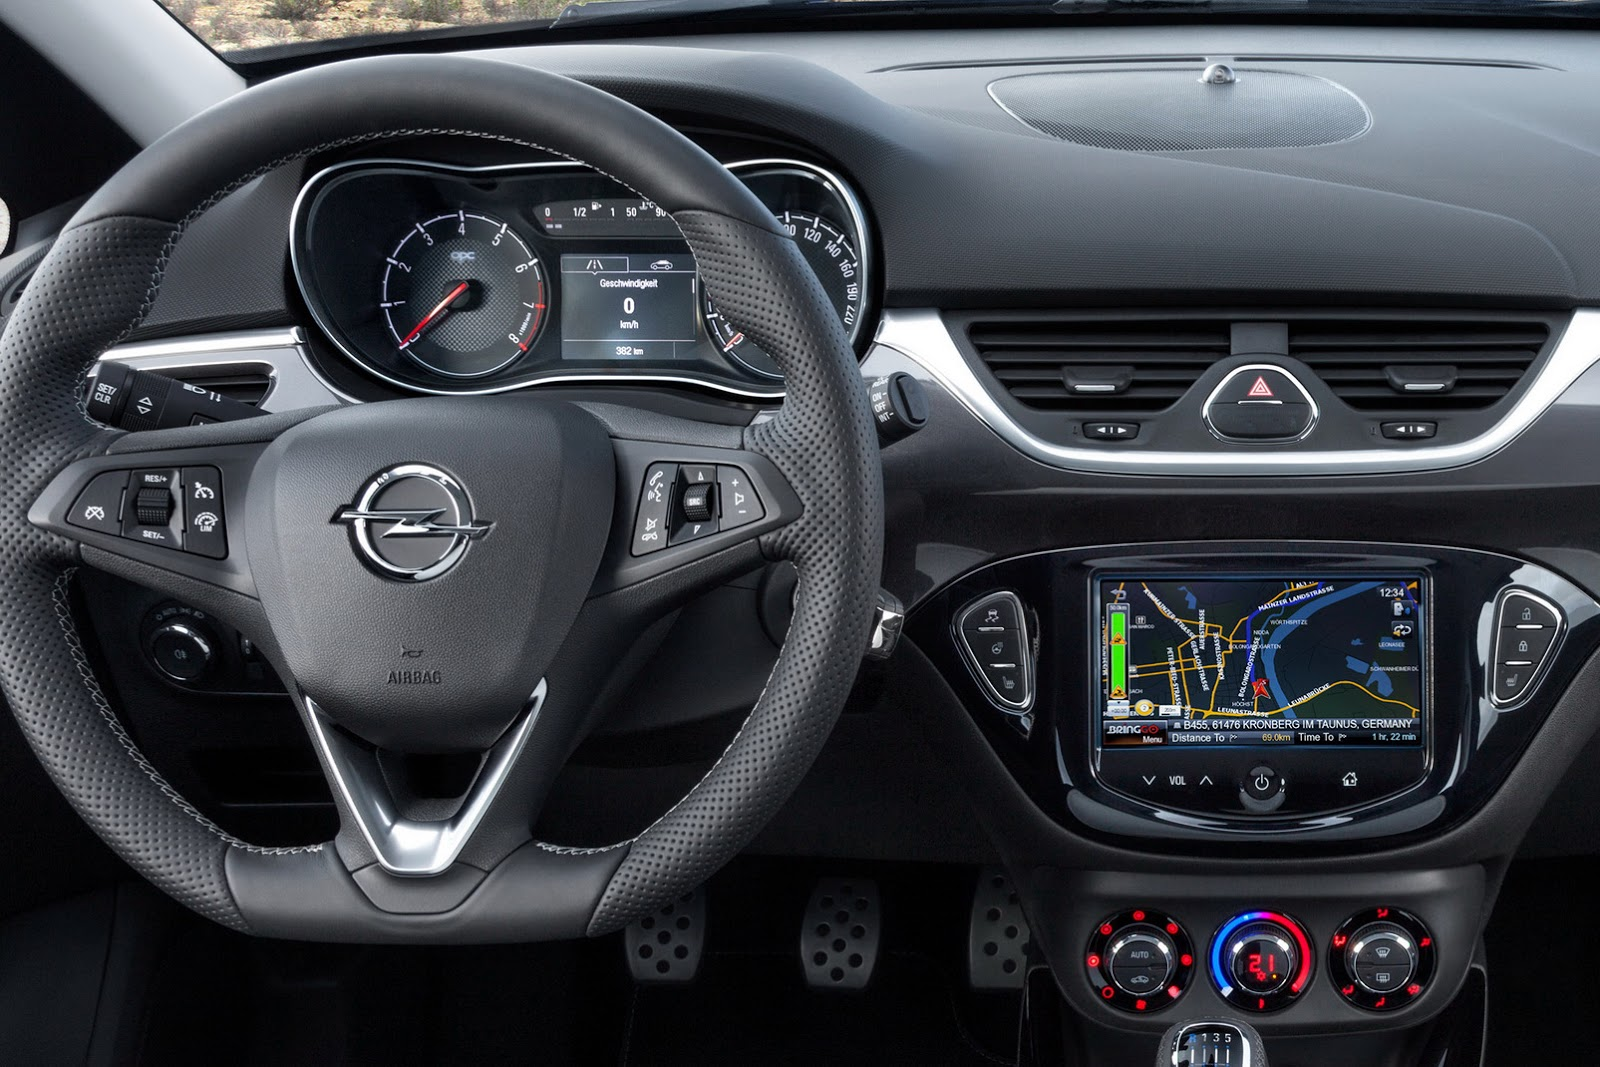 new photos of opel corsa opc expose interior carscoops